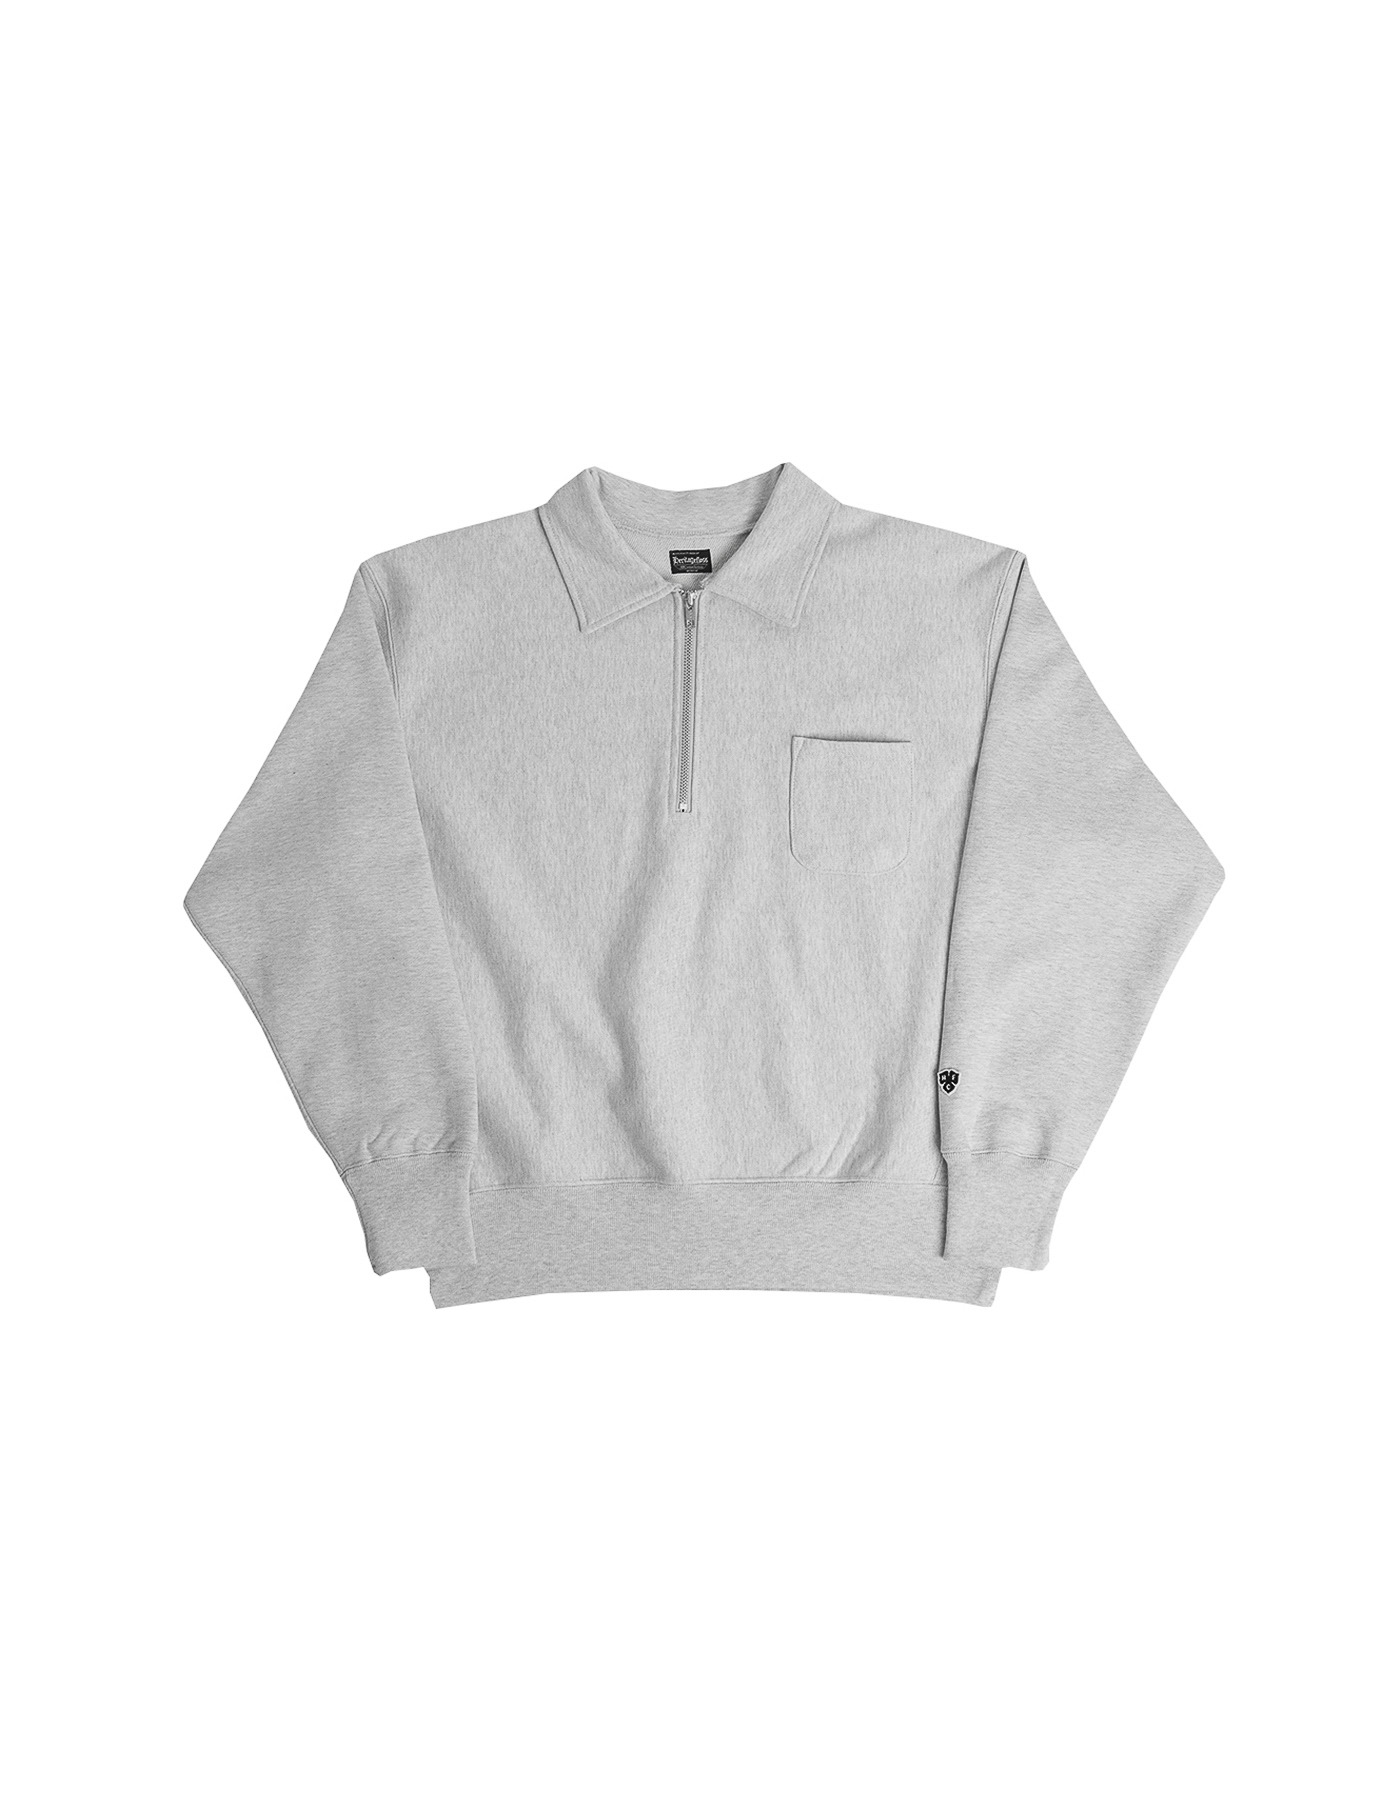 221 REVERSE COLLAR HALF-ZIP / M.GREY(1%)